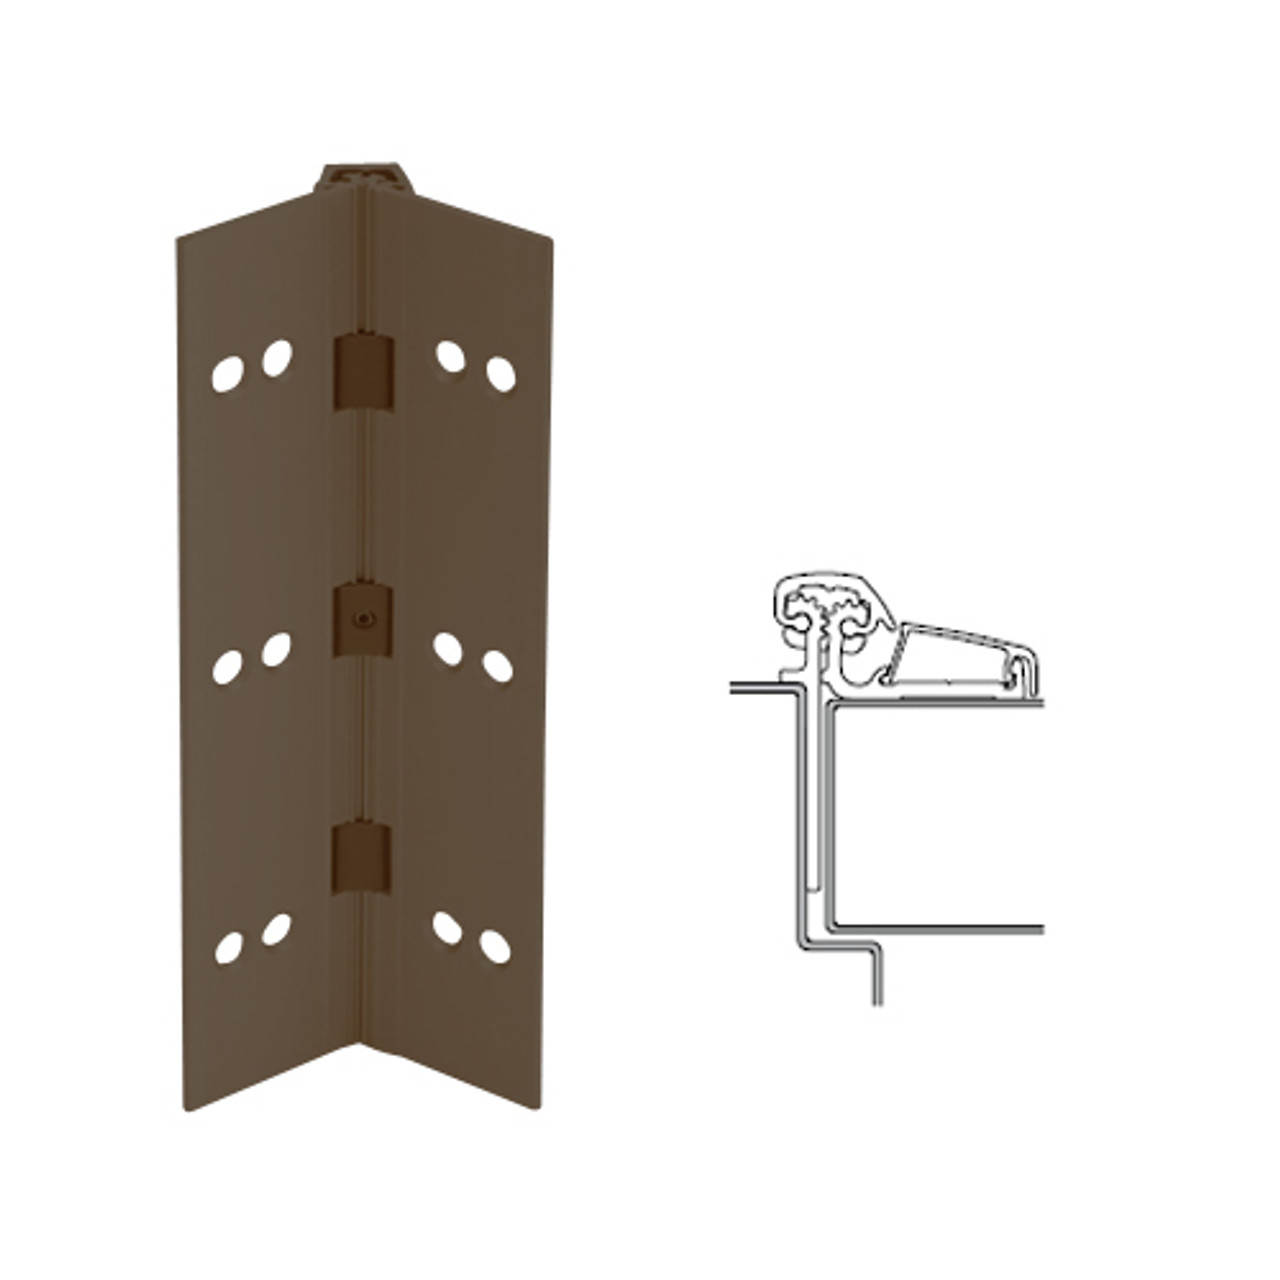 053XY-313AN-85-SECWDWD IVES Adjustable Half Surface Continuous Geared Hinges with Security Screws - Hex Pin Drive in Dark Bronze Anodized